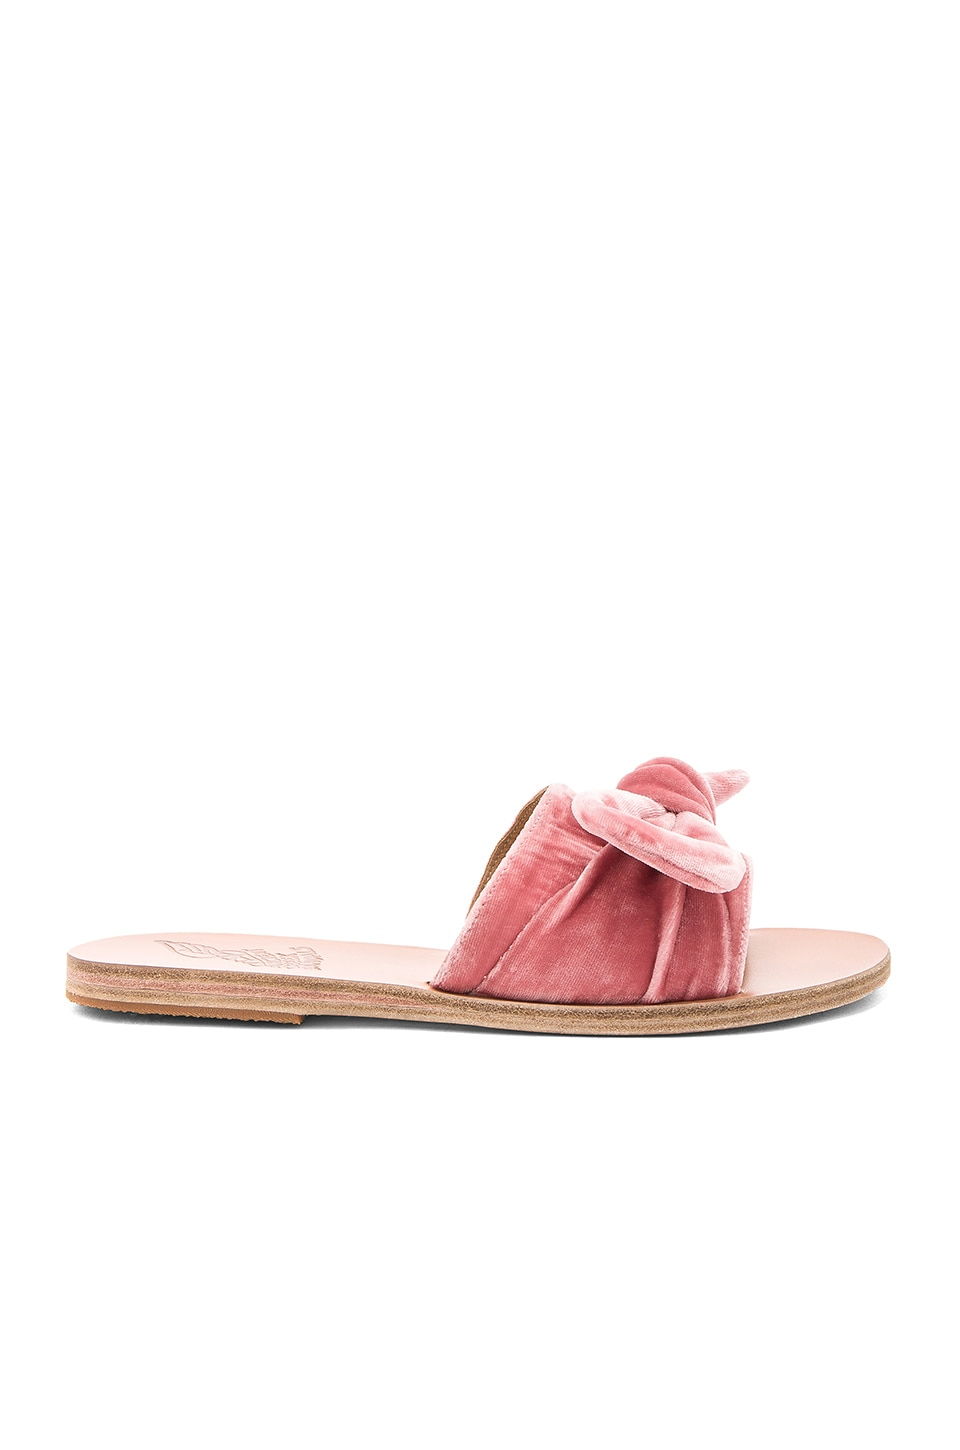 Taygete Bow Slide by Ancient Greek Sandals